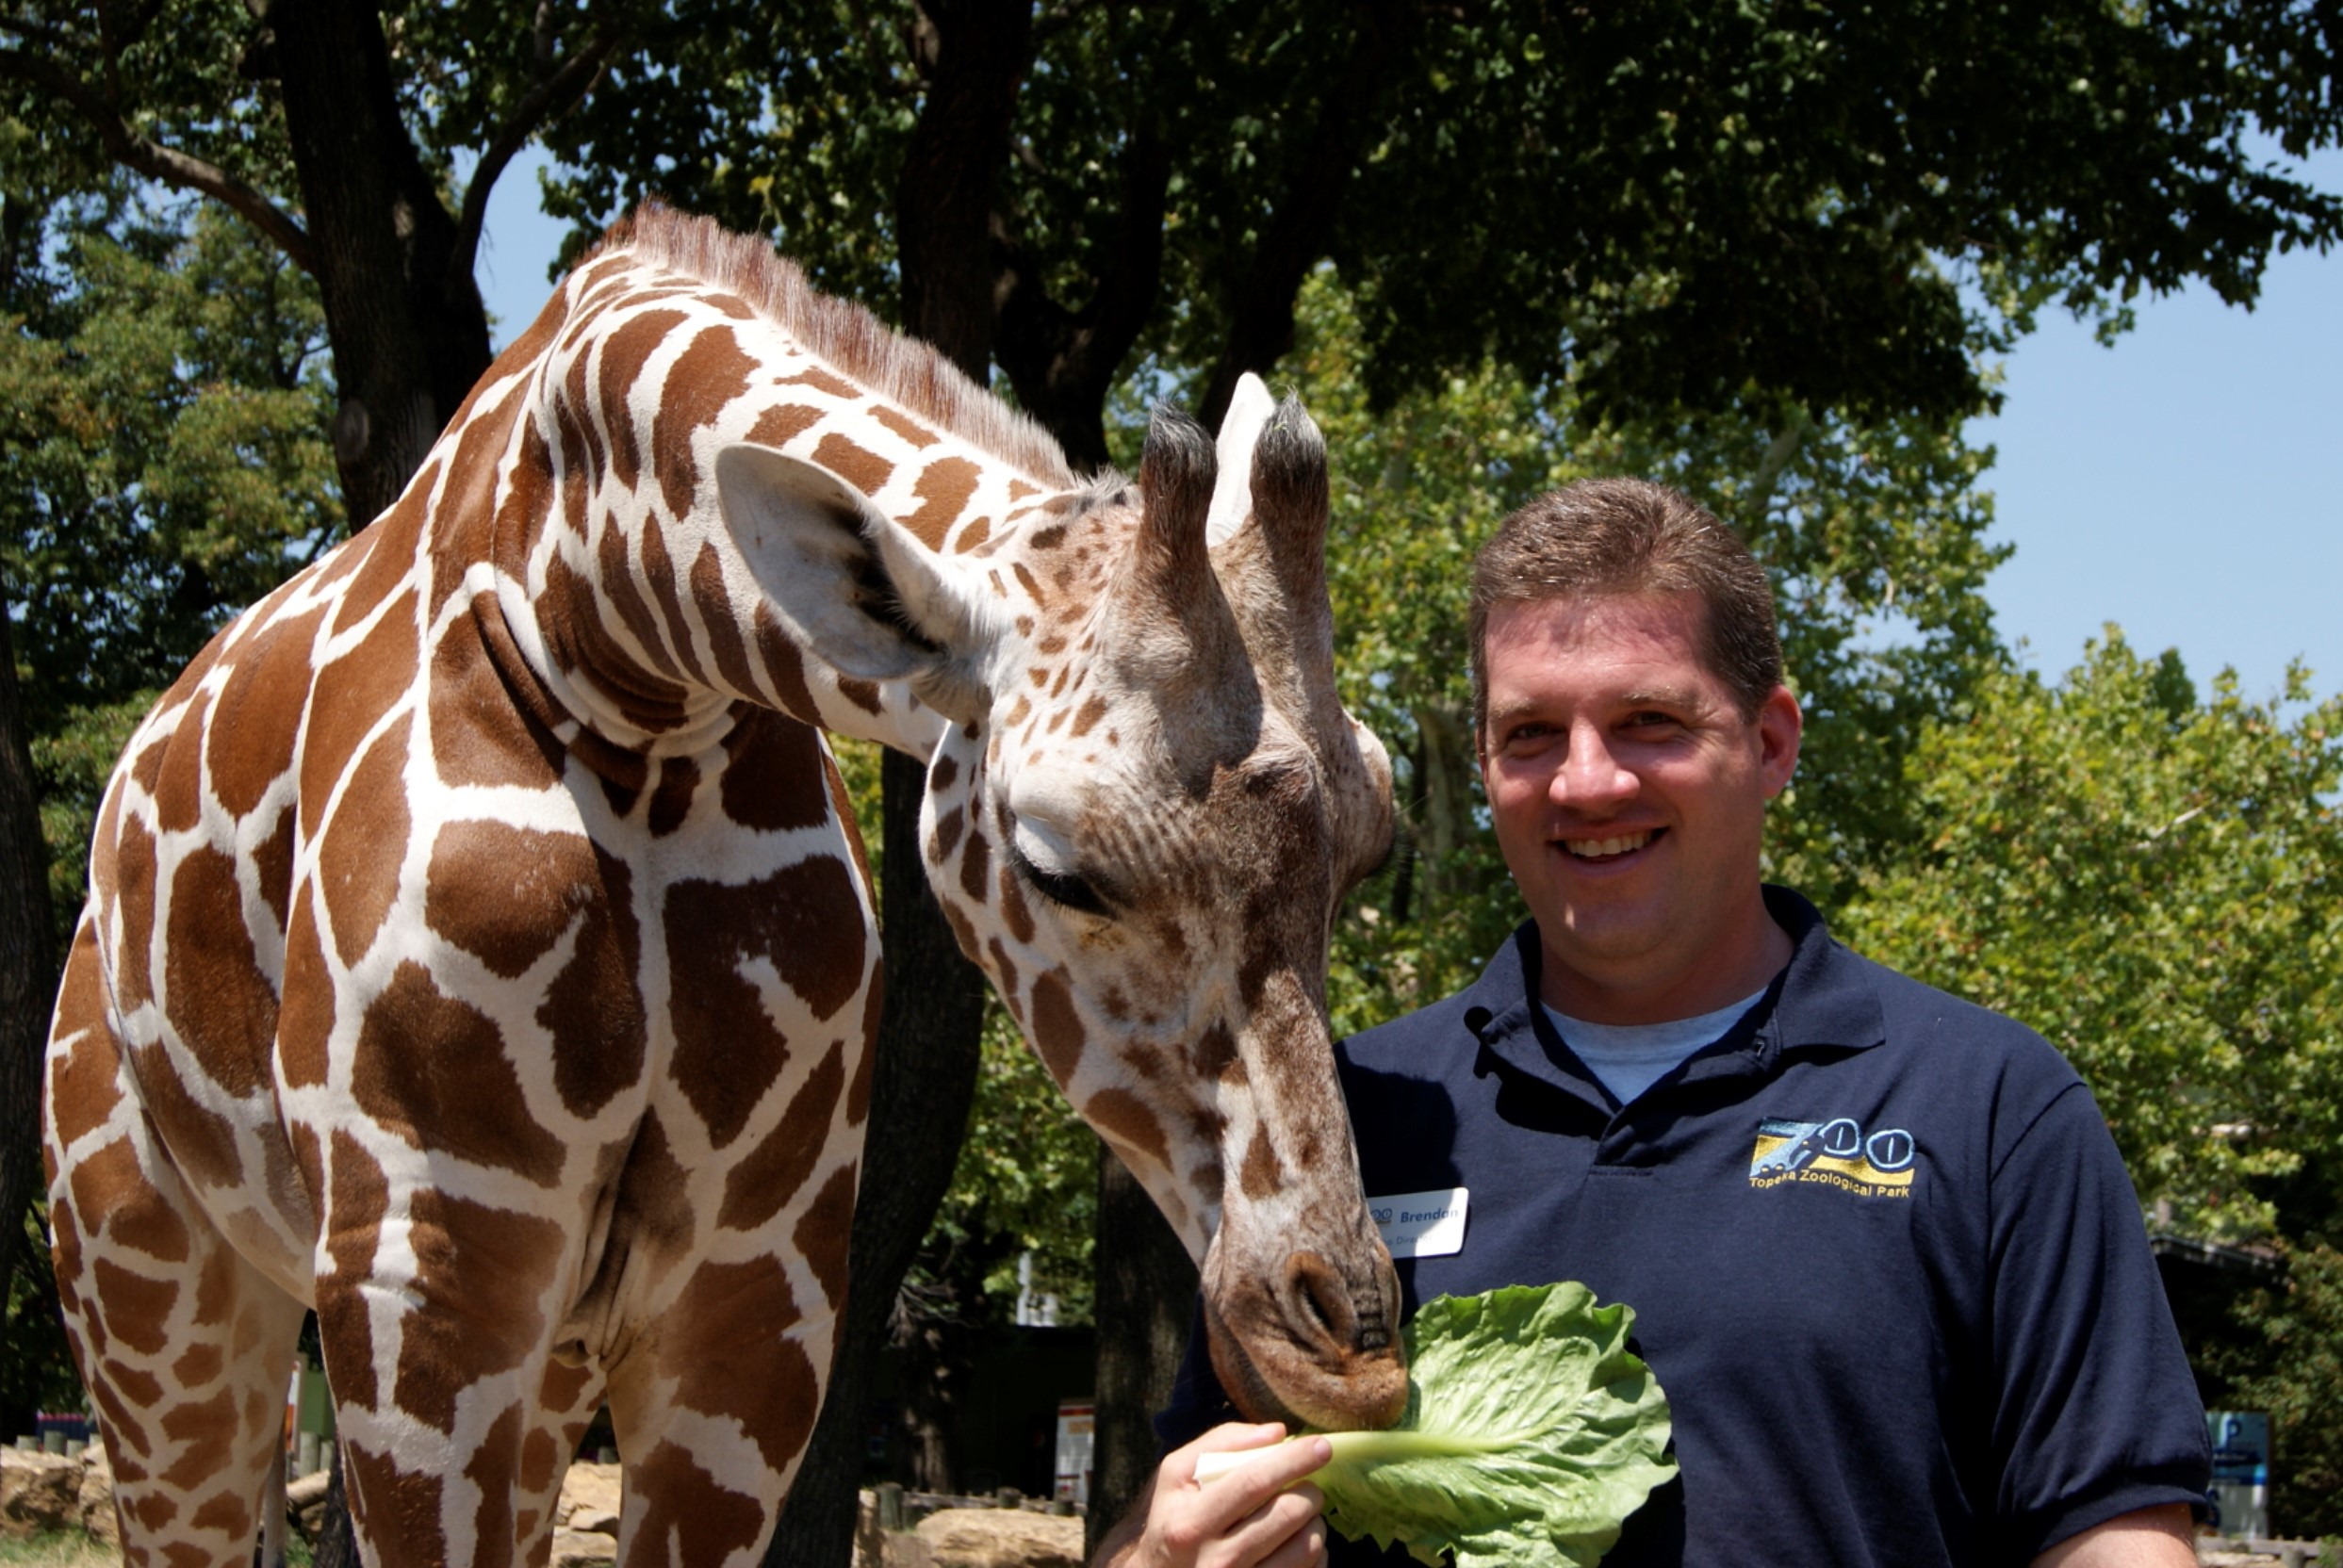 Director Brendan Wiley with Hope the Reticulated Giraffe. Both began their tenure in 2010.